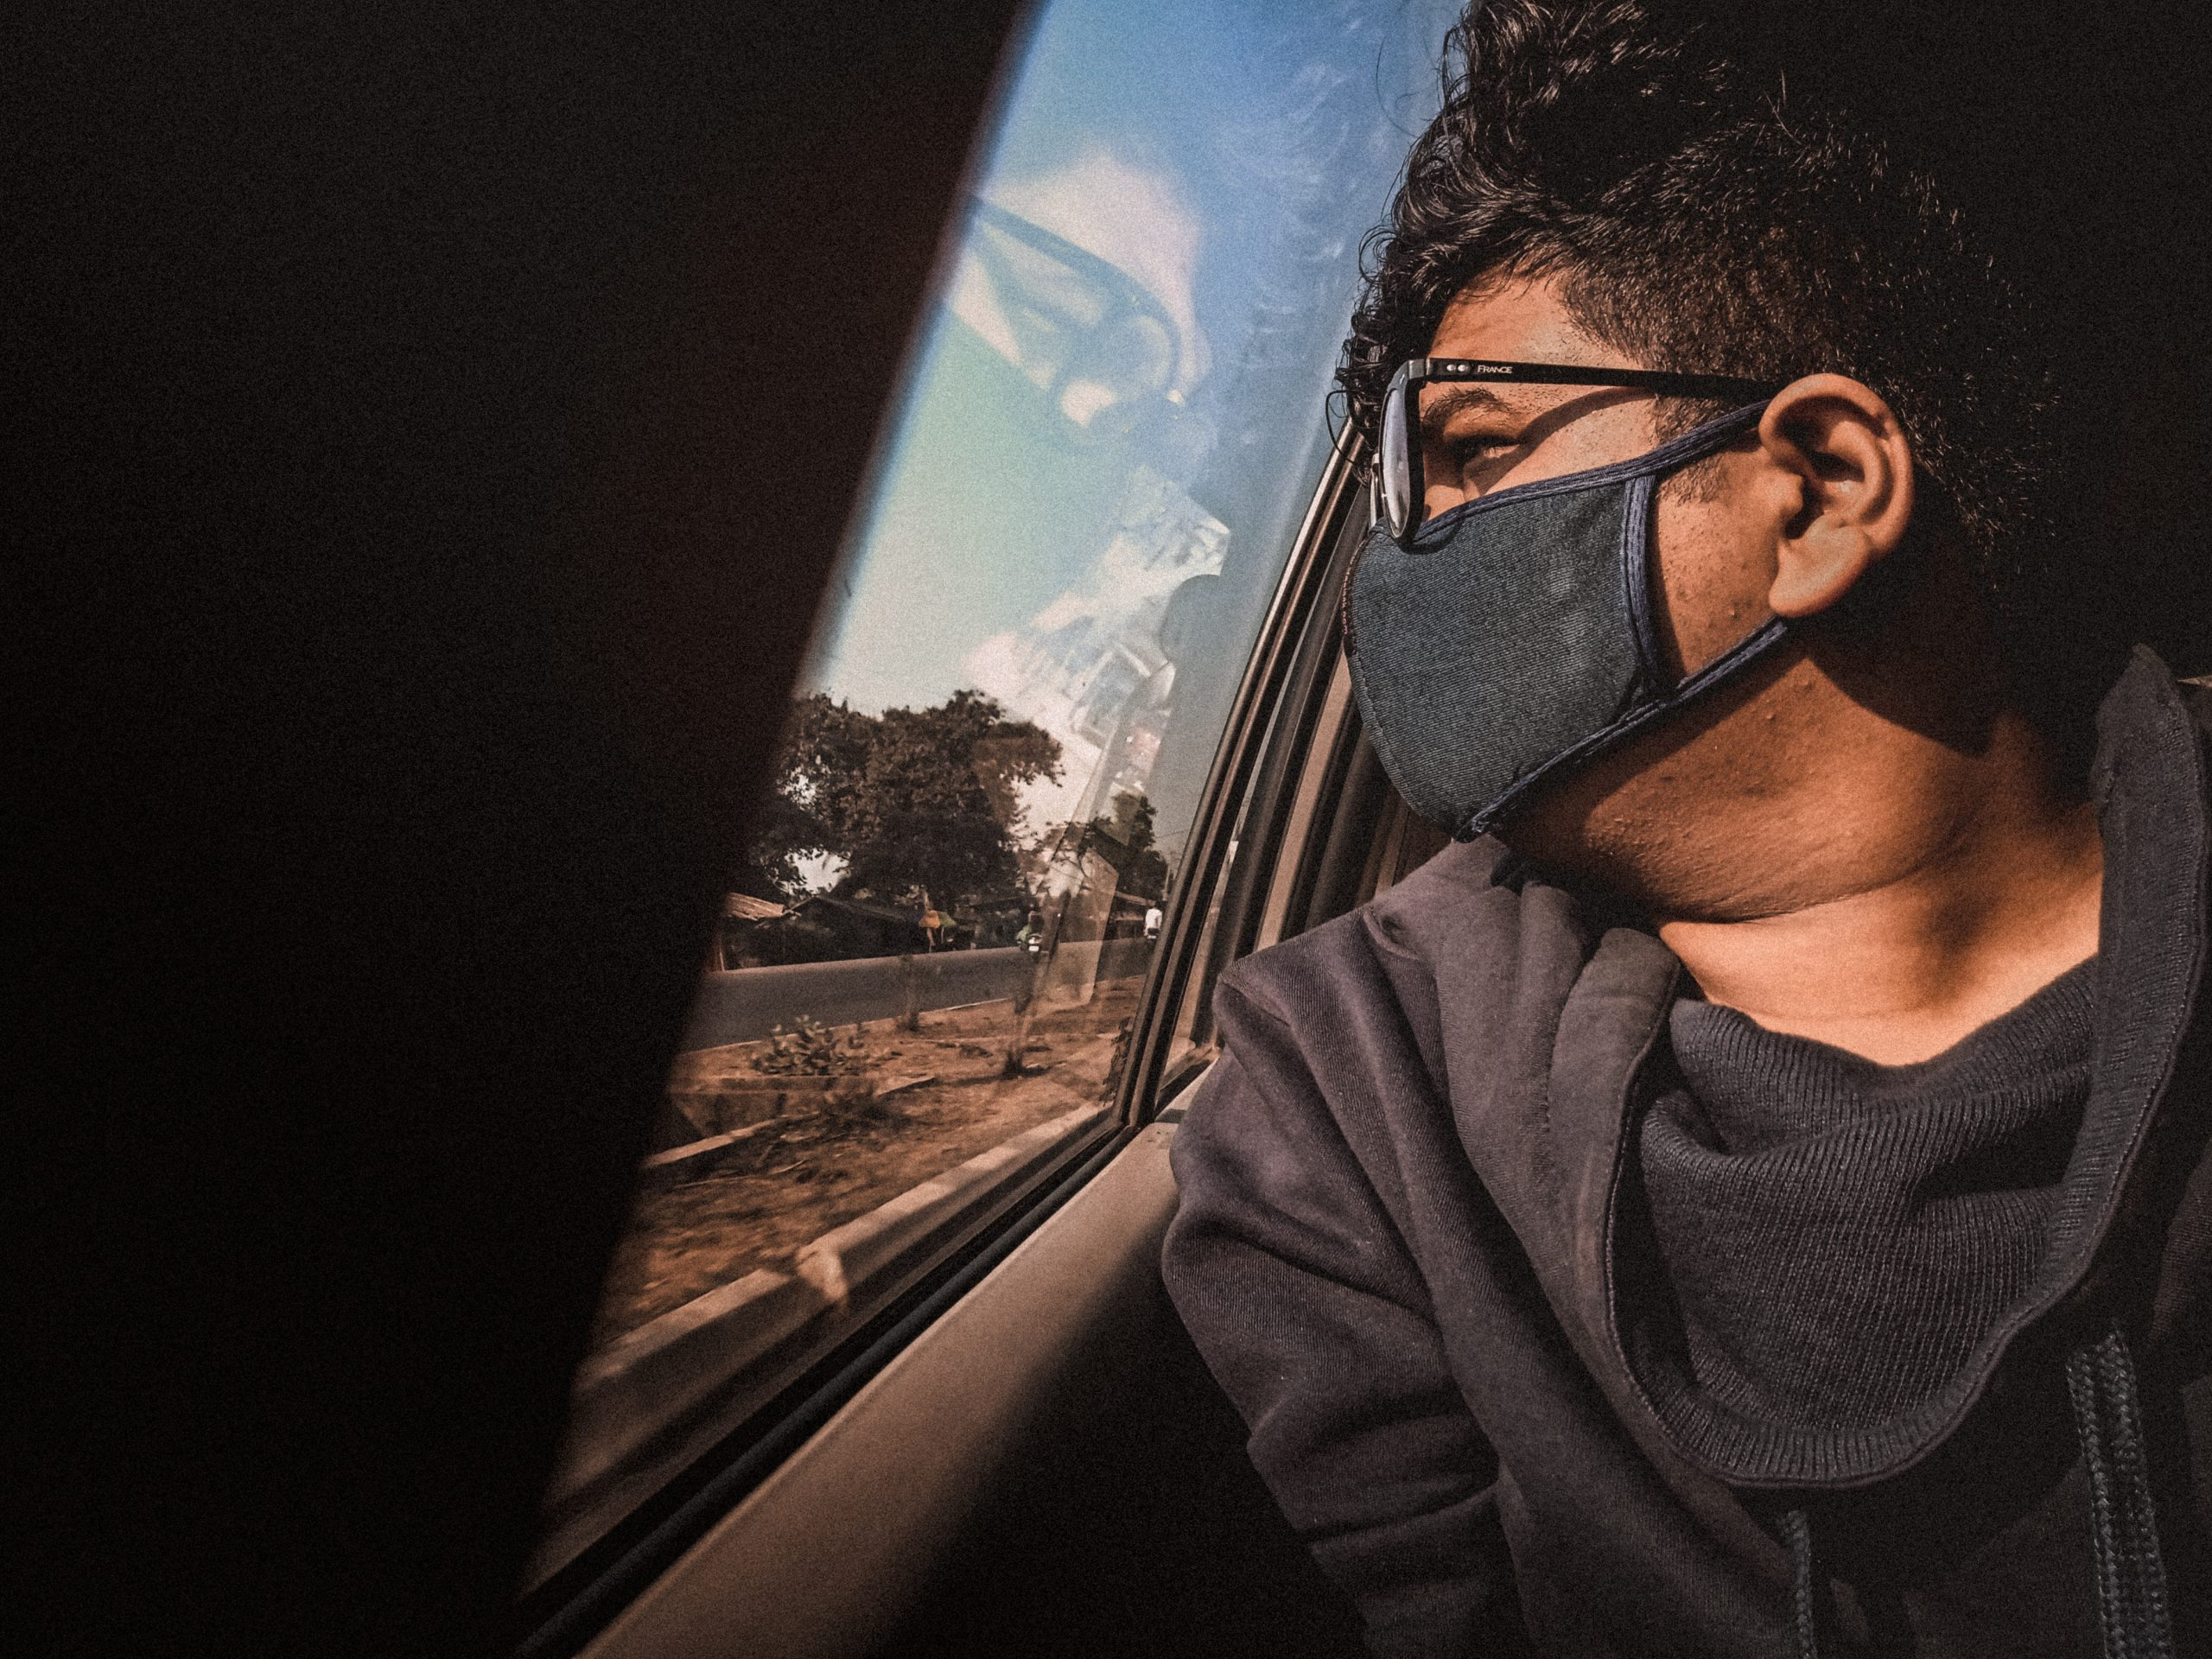 A boy through car window